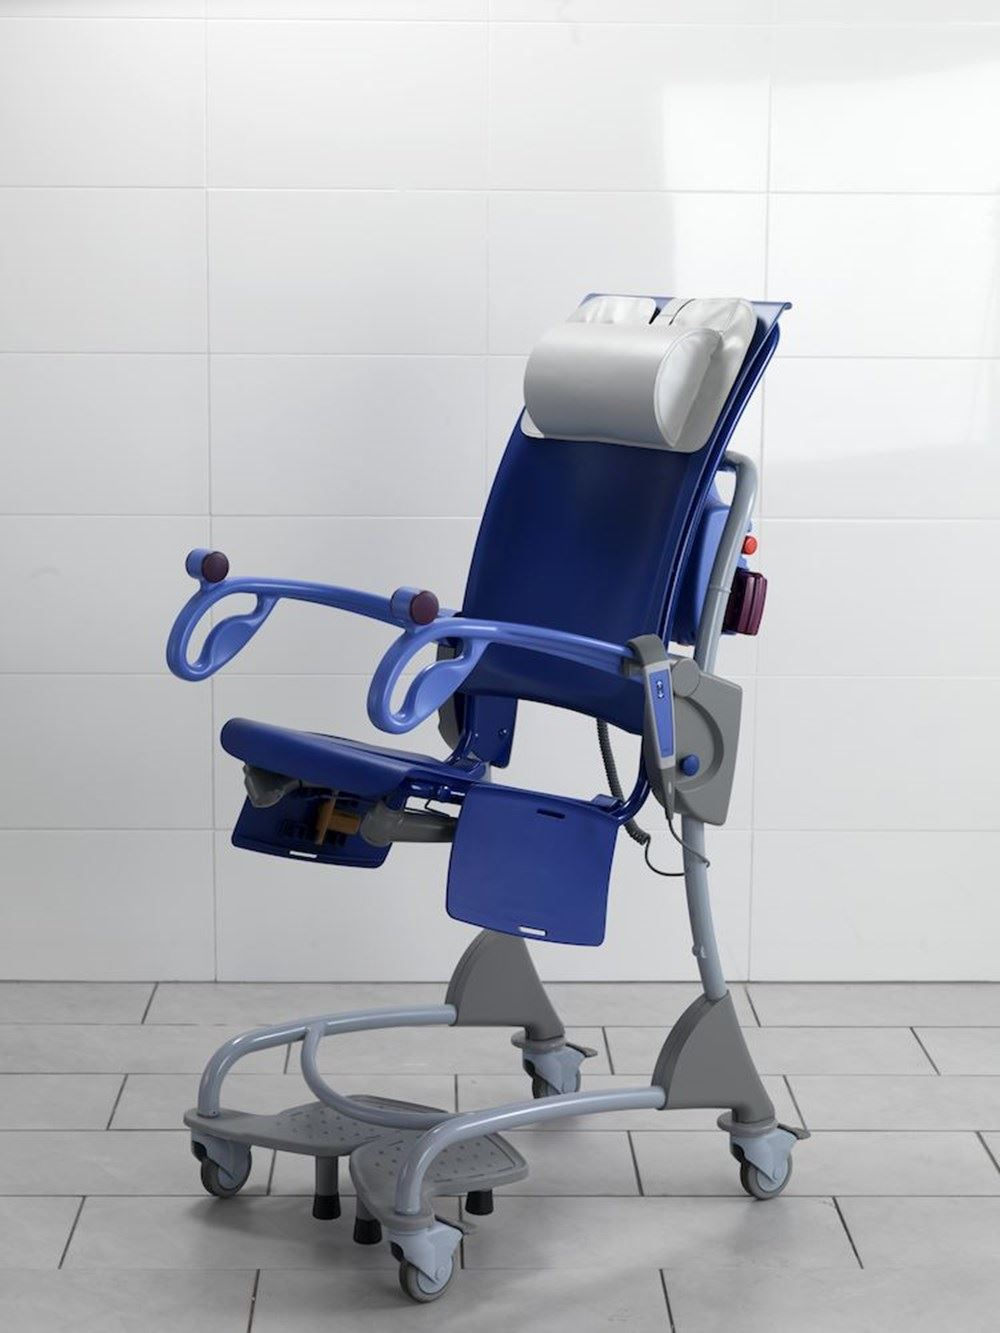 Carino Height Adjustable Shower And Hygiene Commode Chair By Arjohuntleigh Fully Assembled Refurbished With Warranty